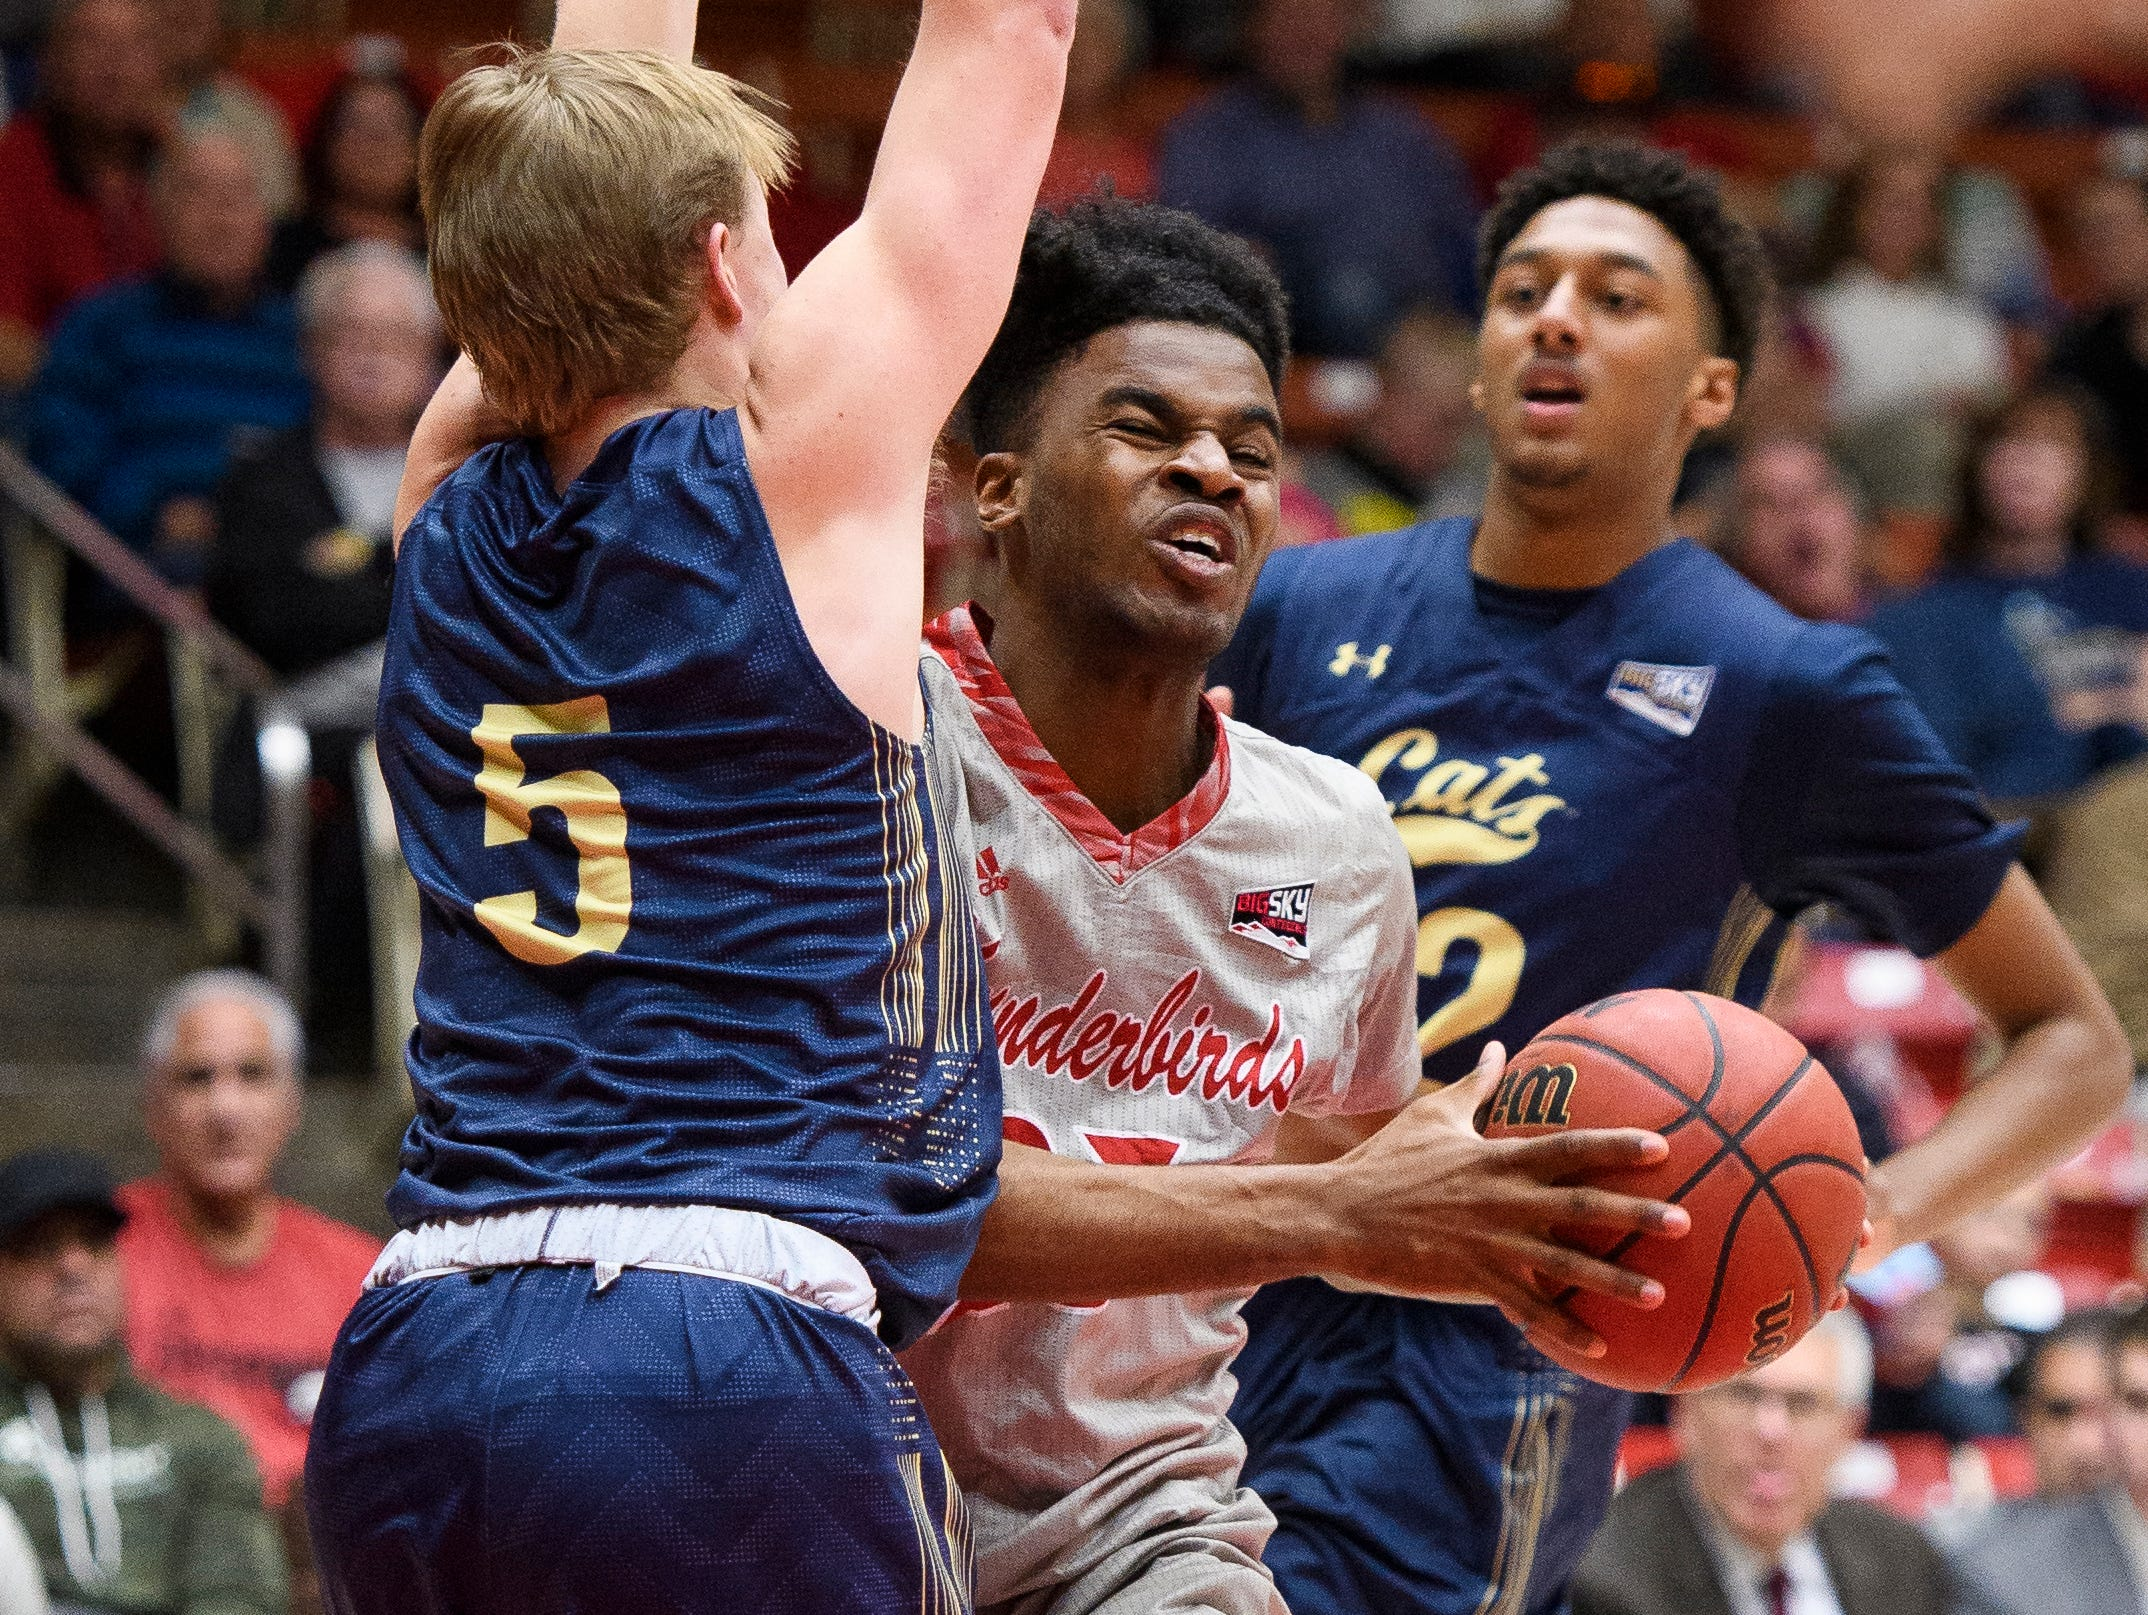 Southern Utah University junior Cameron Oluyitan (23) runs into Montana State University junior Harald Frey (5) during the game in the America First Event Center Saturday, December 29, 2018. SUU lost, 92-62.